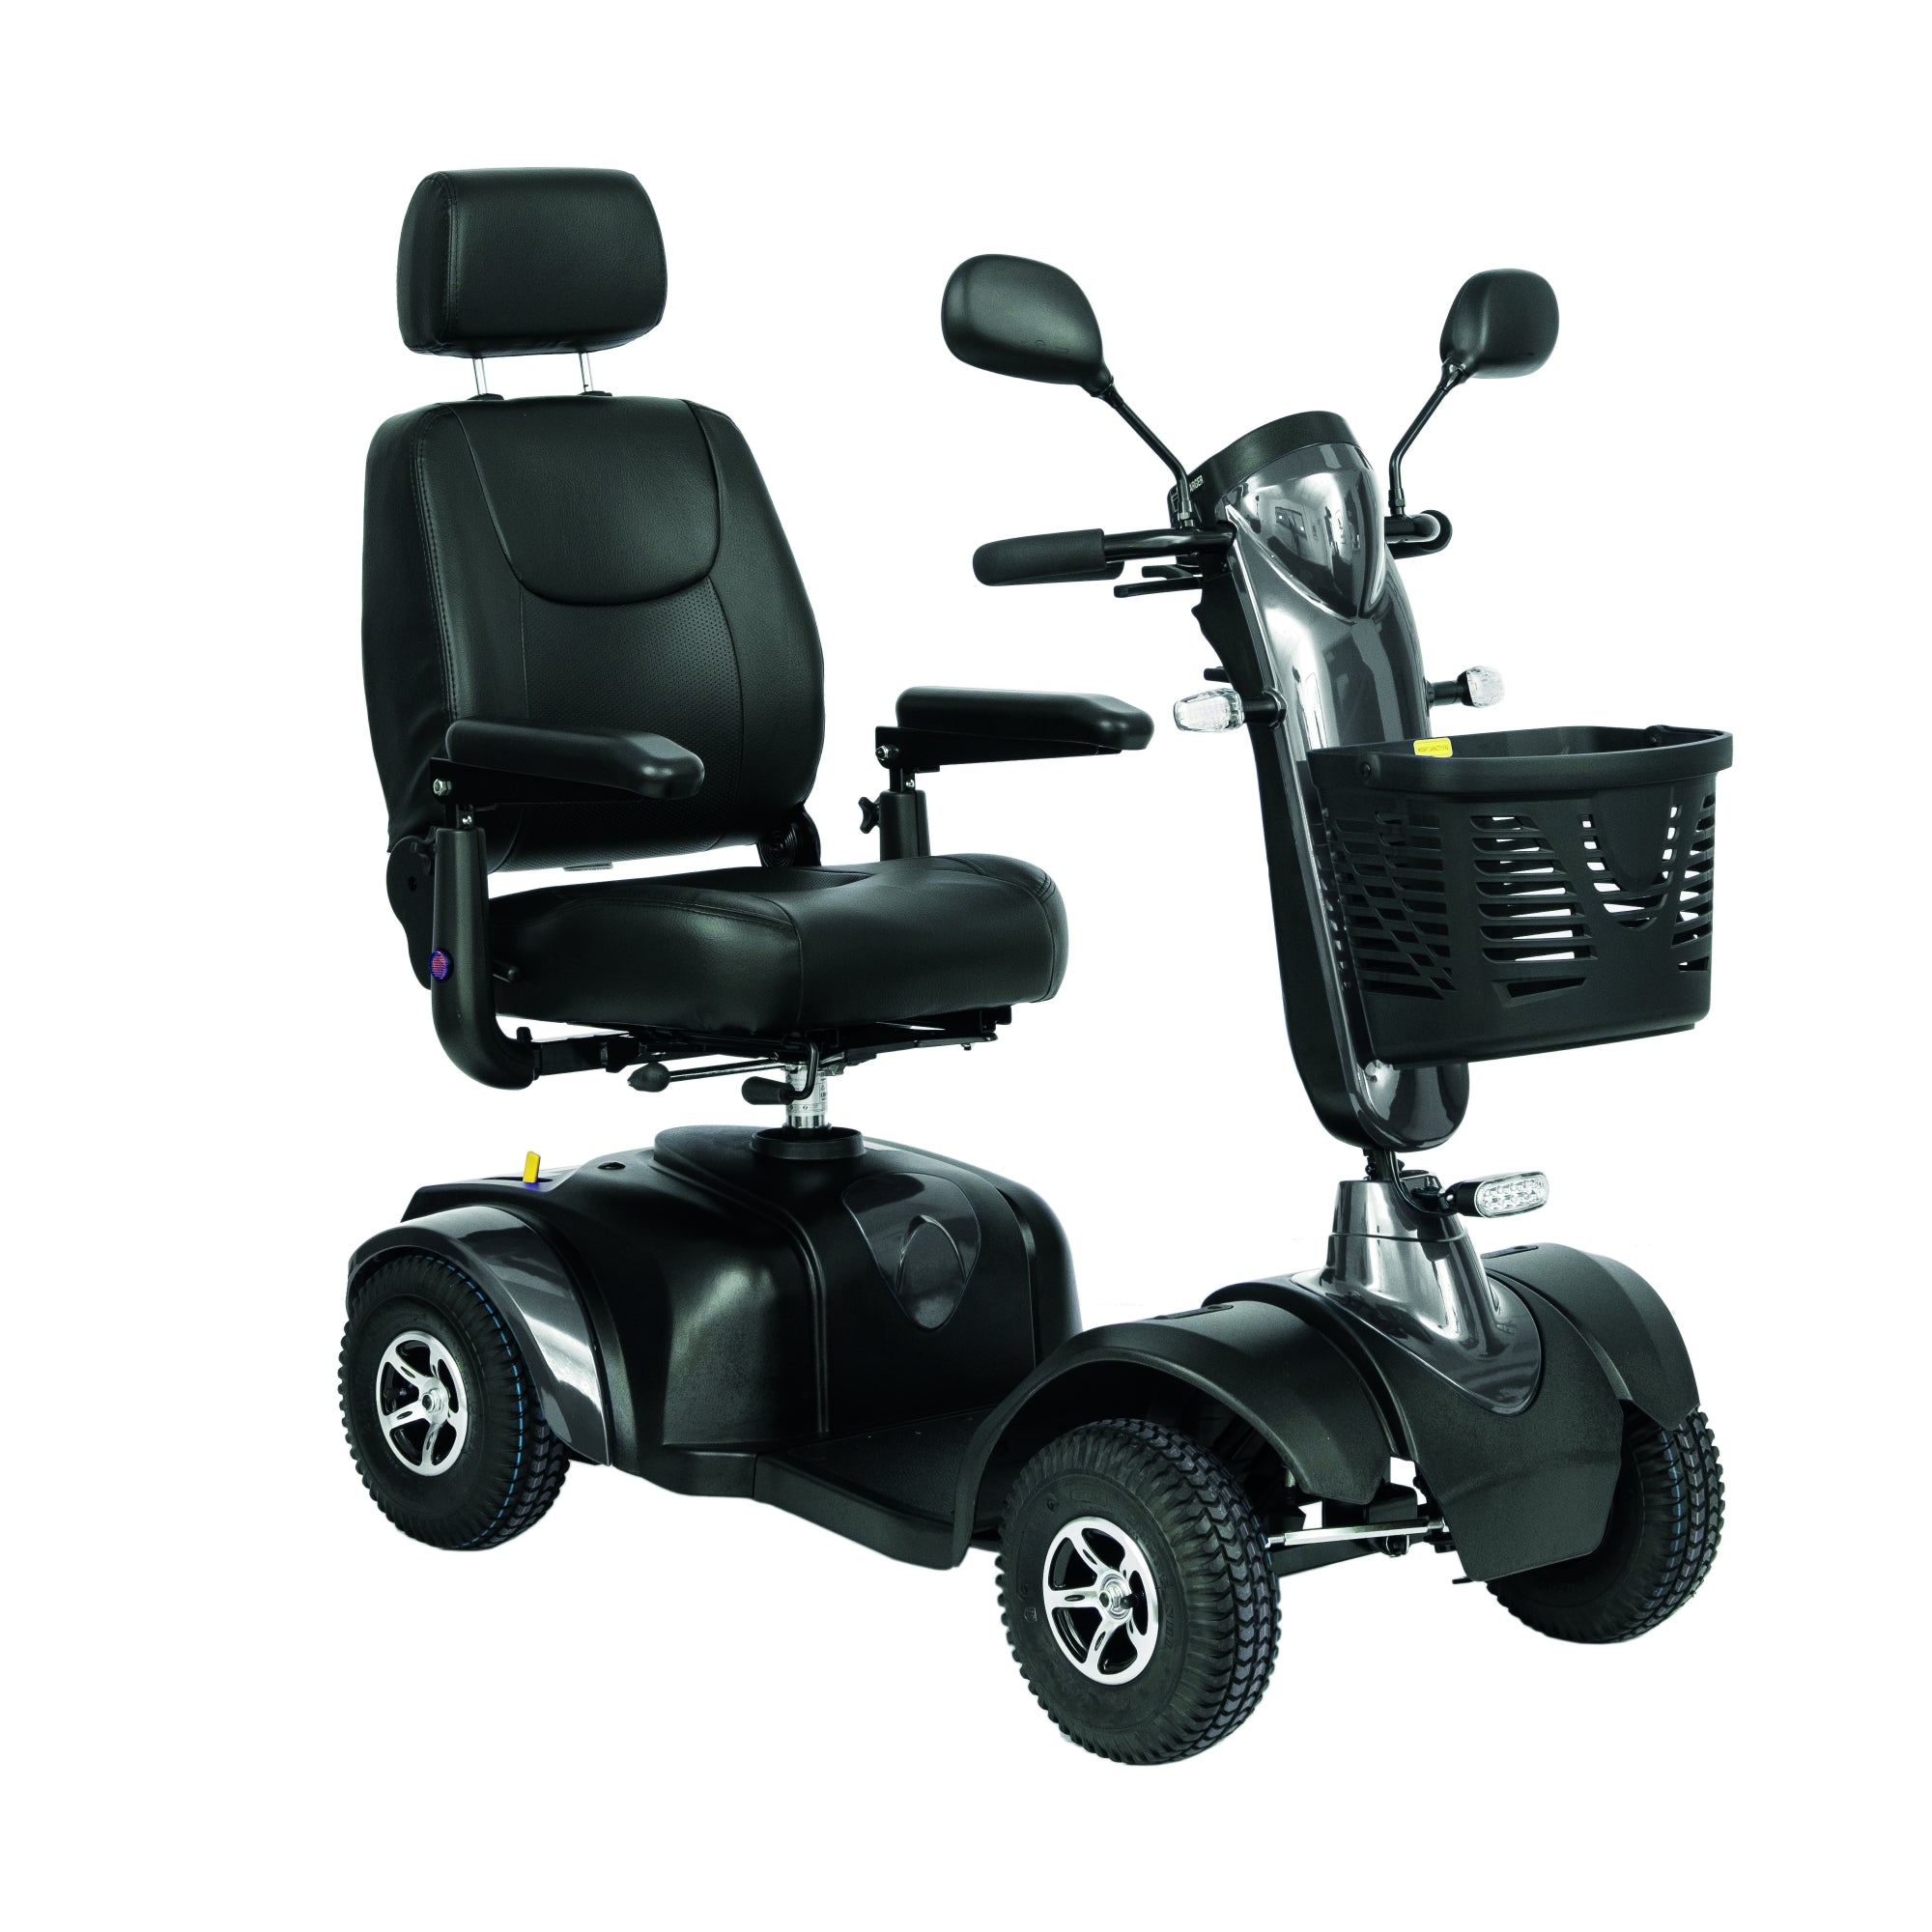 Excel Roadster DX8 Compact 8mph Scooter